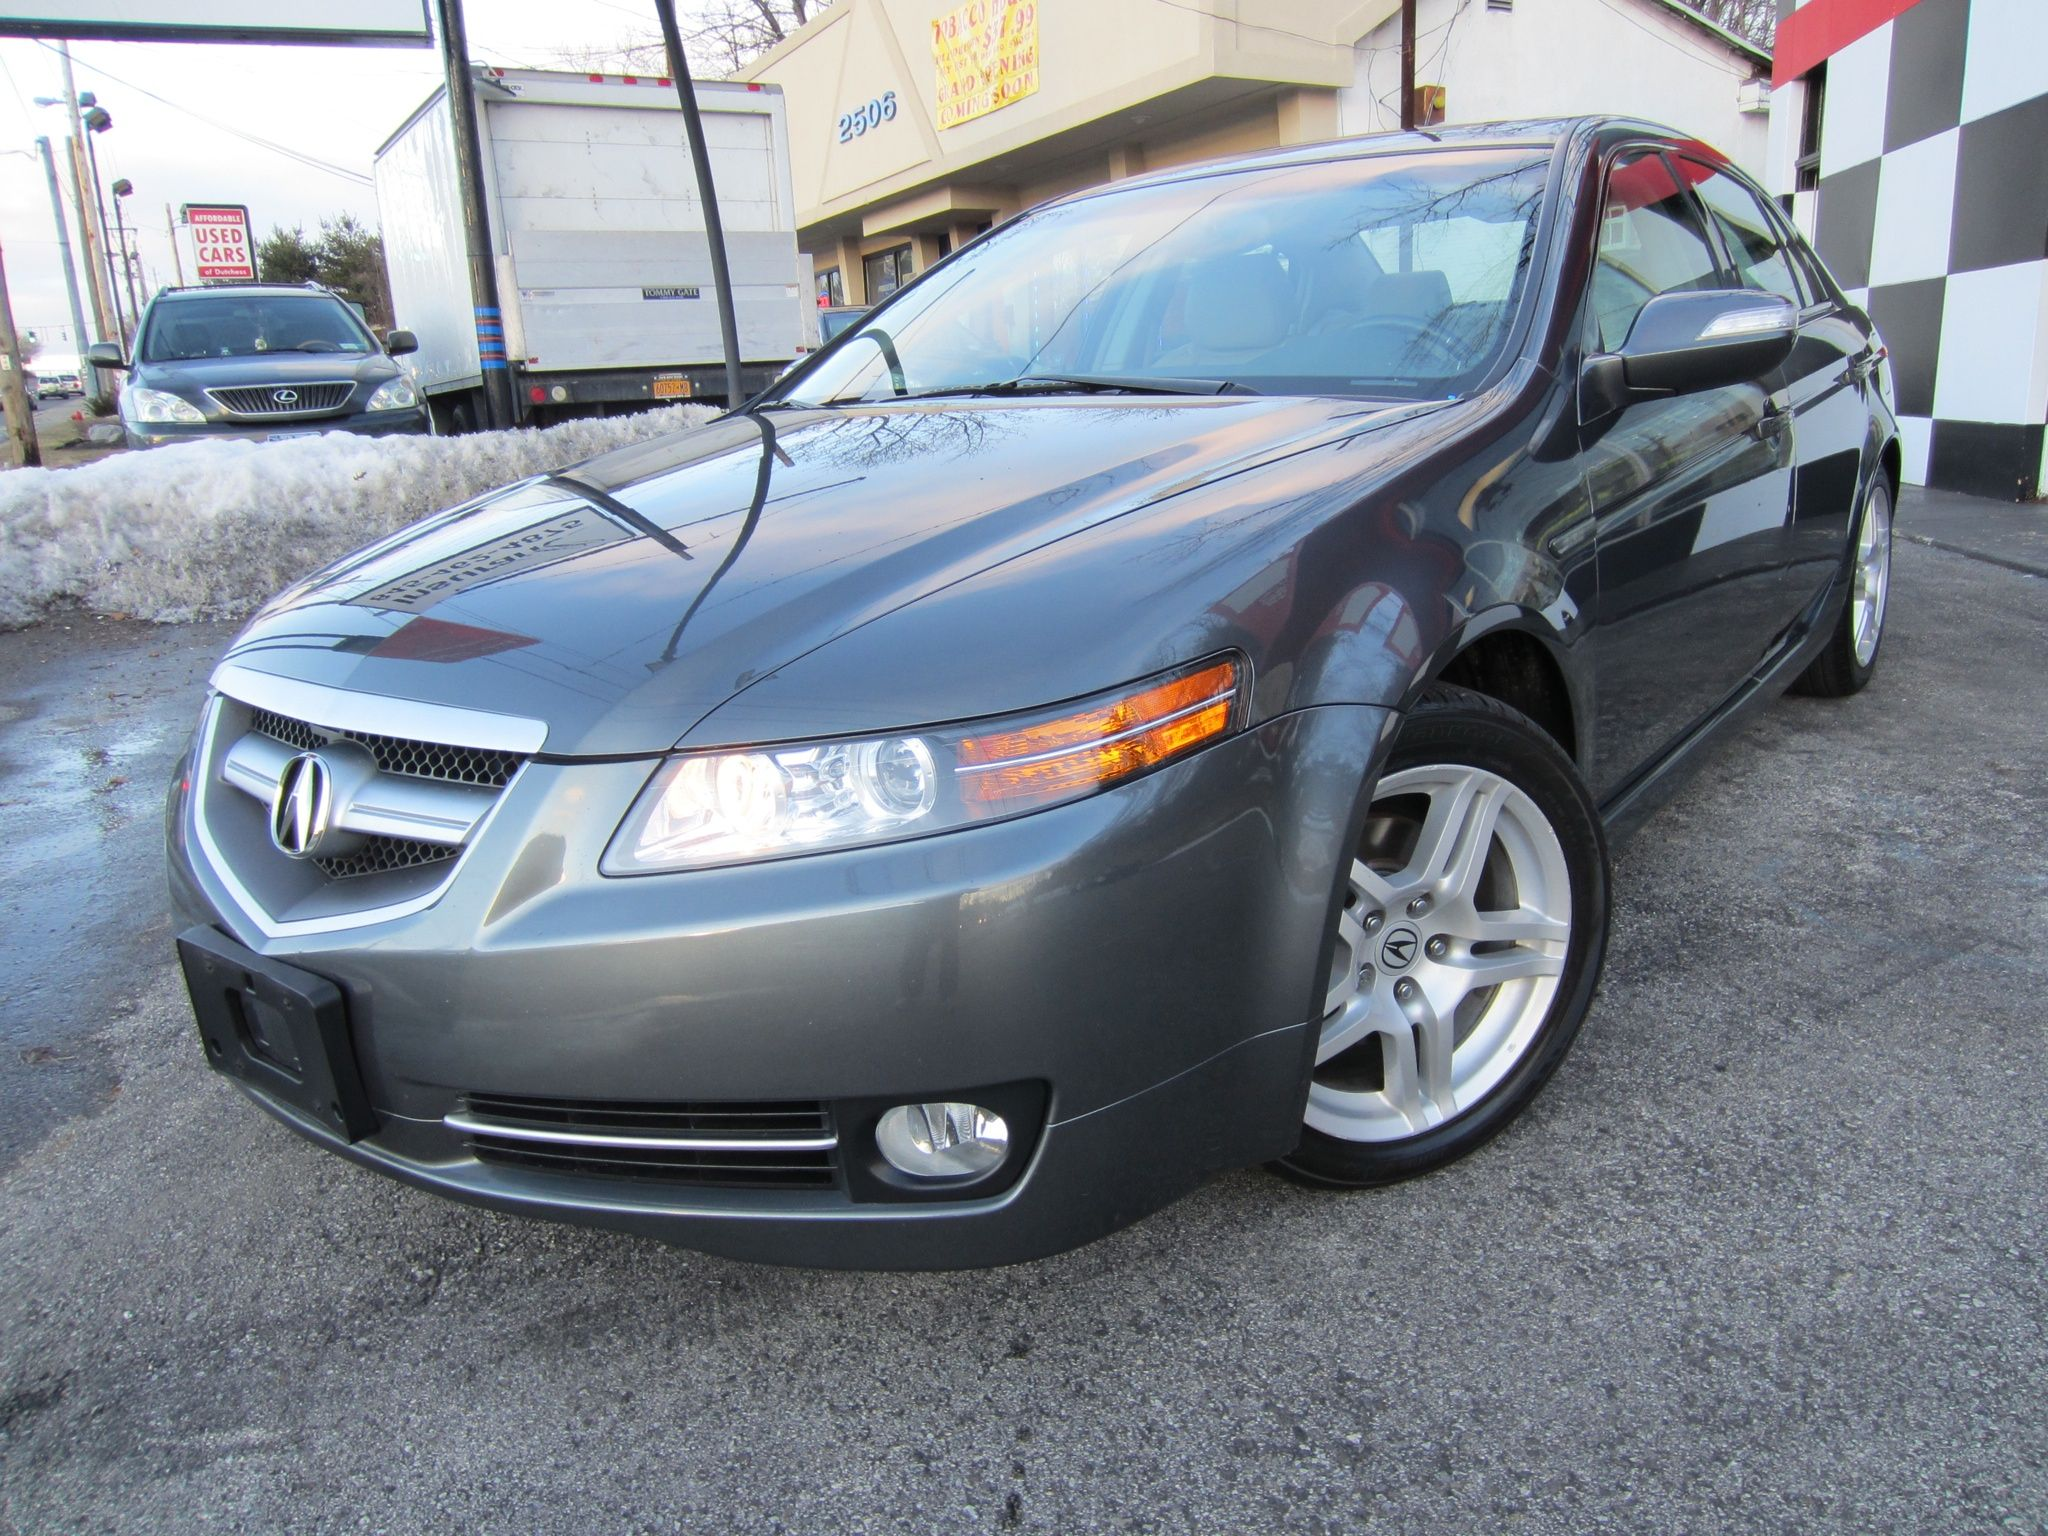 Just In Super Clean Acura Tl One Owner Clean Carfax Low Miles With 63625 Stop By Today And Drive Home Tomorrow Financing For A Acura Cars For Sale Acura Tl